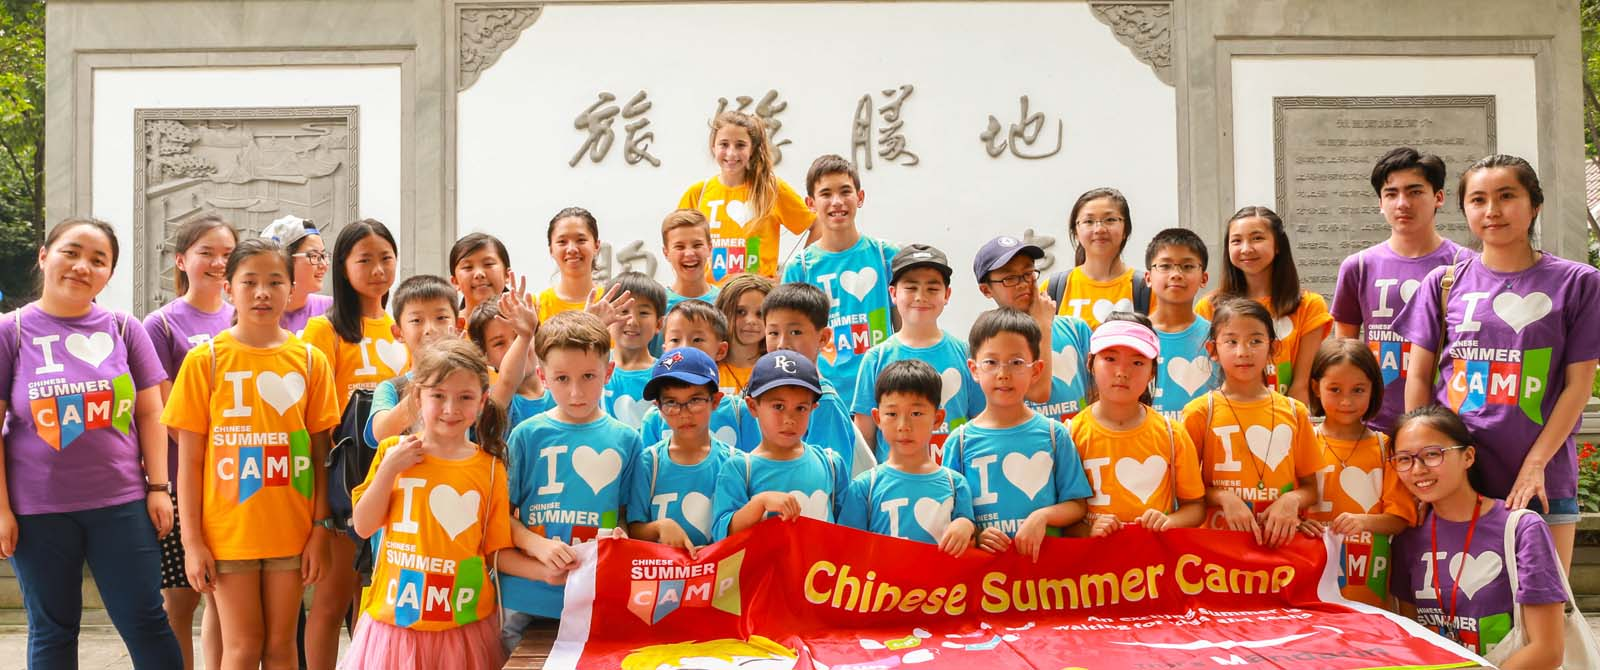 Summer Camp in China - homepage banner